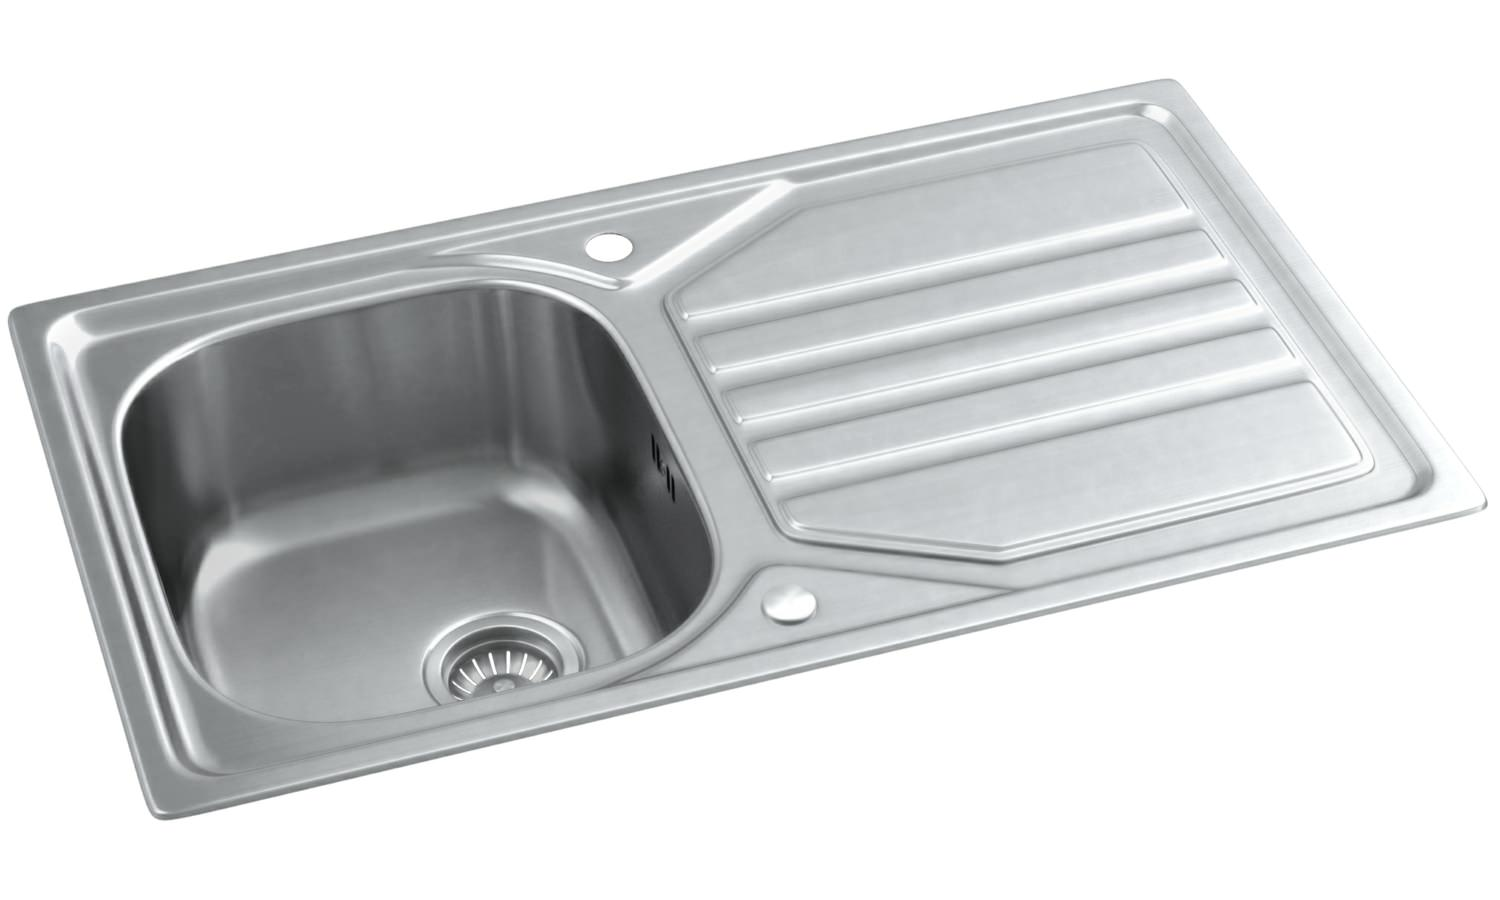 abode mikro stainless steel 1.0 bowl kitchen sink with drainer